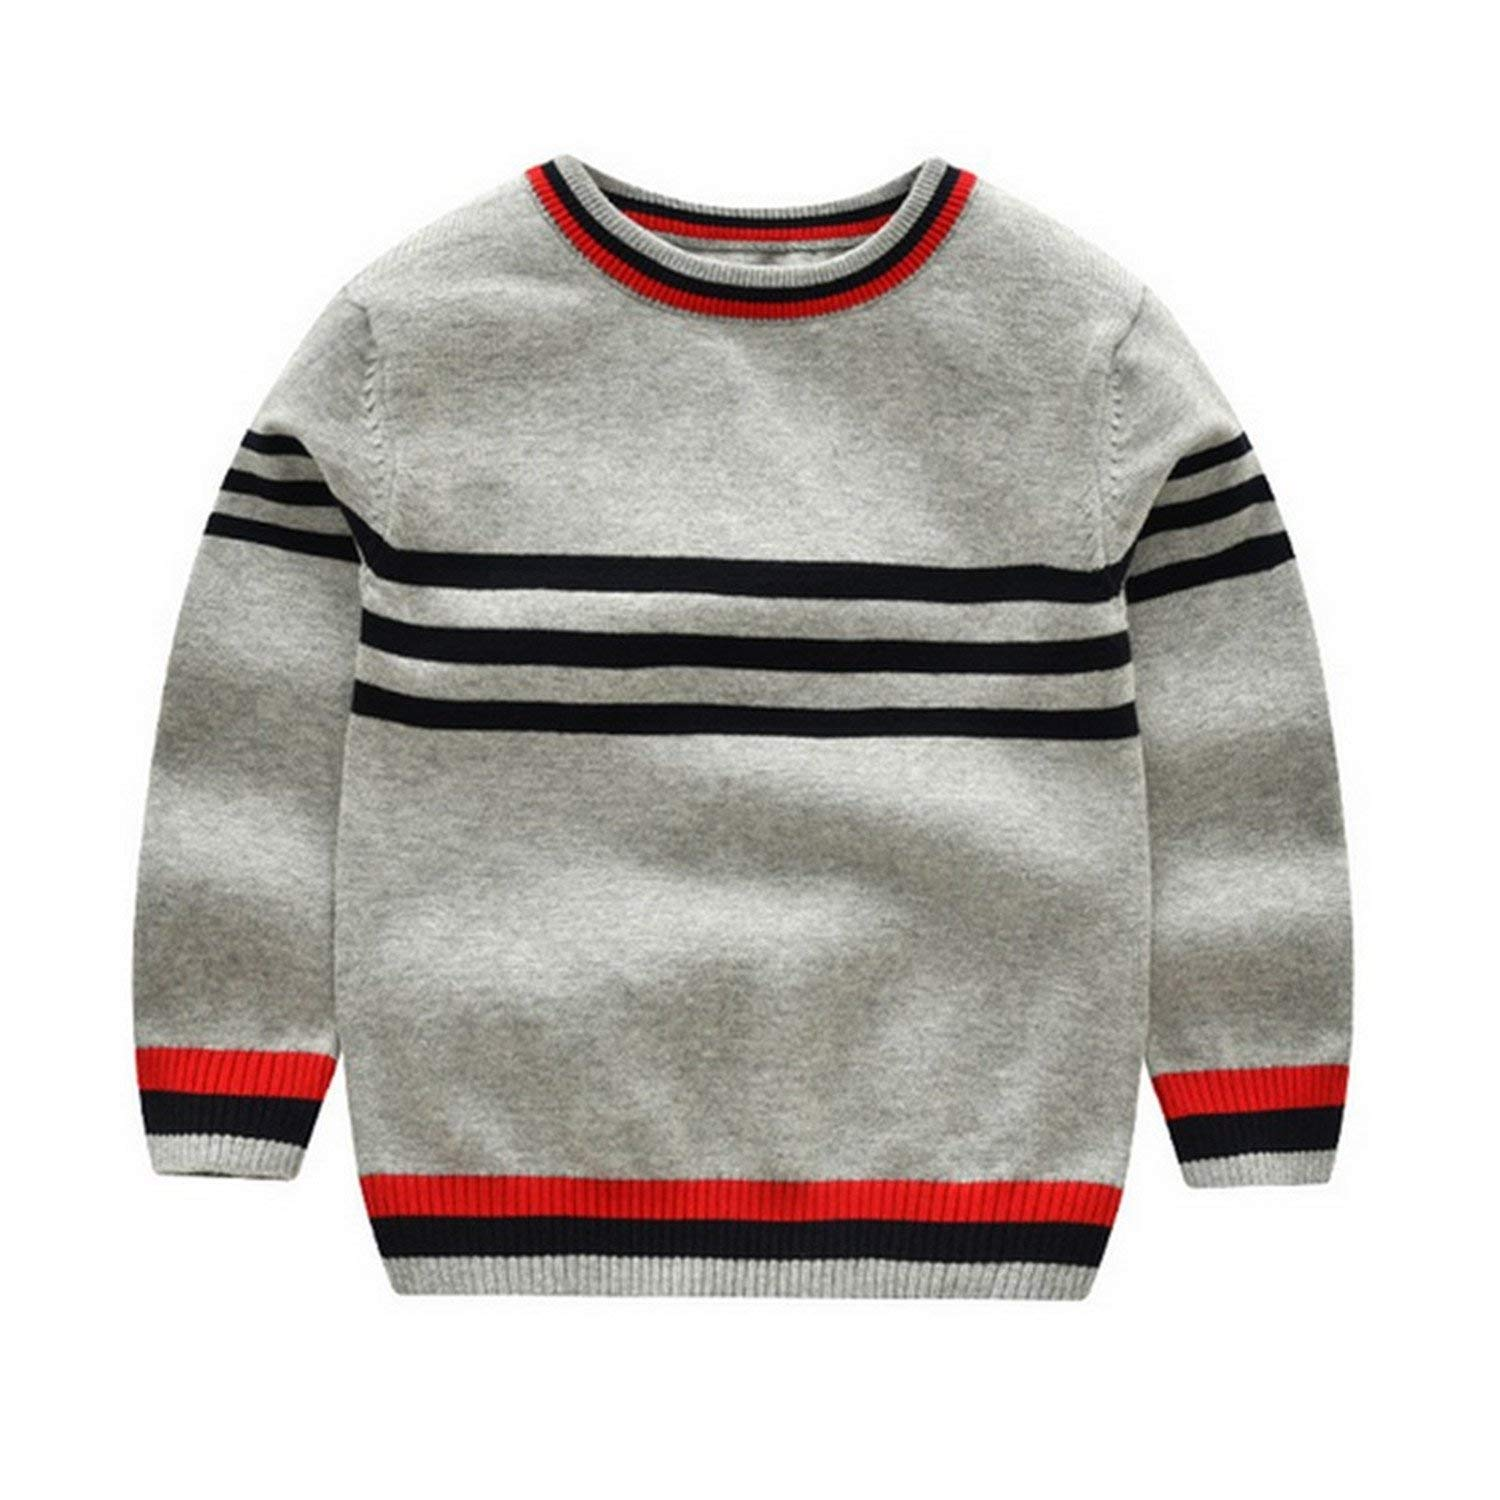 642a4f45e Cheap Baby Sweaters For Boys